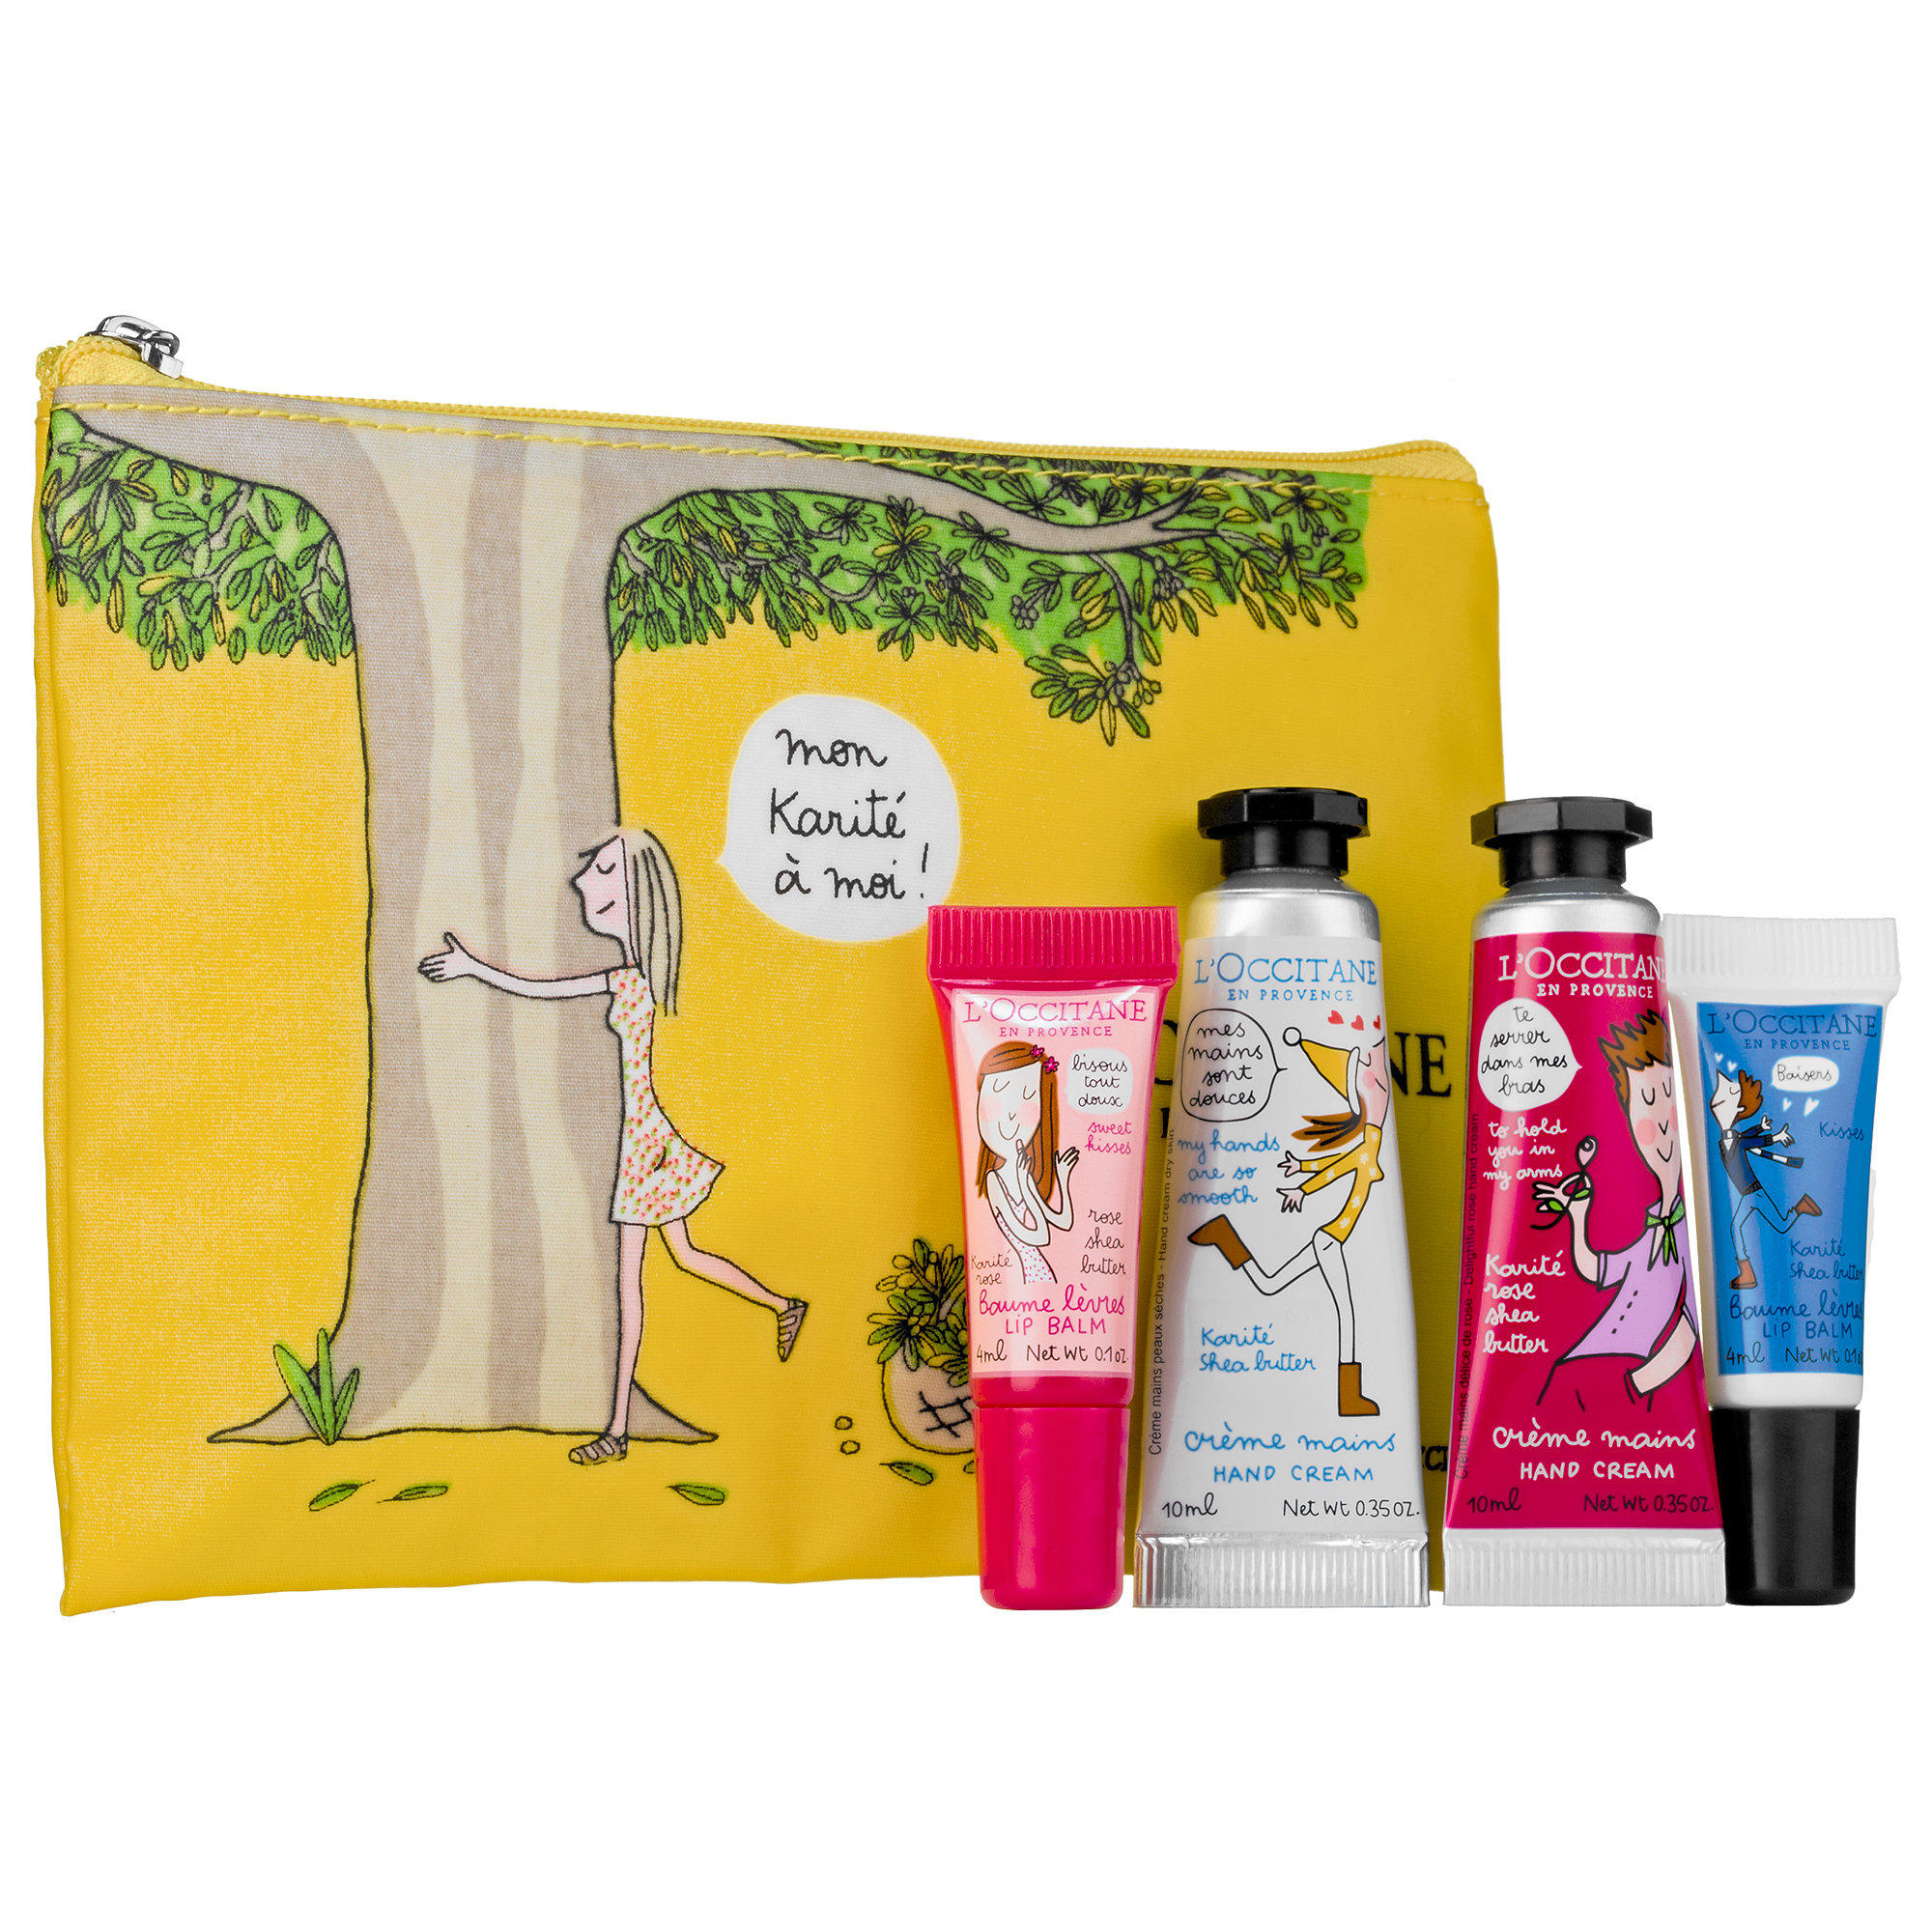 L'Occitane launched Hugs & Kisses Hand & Lip Duo Set